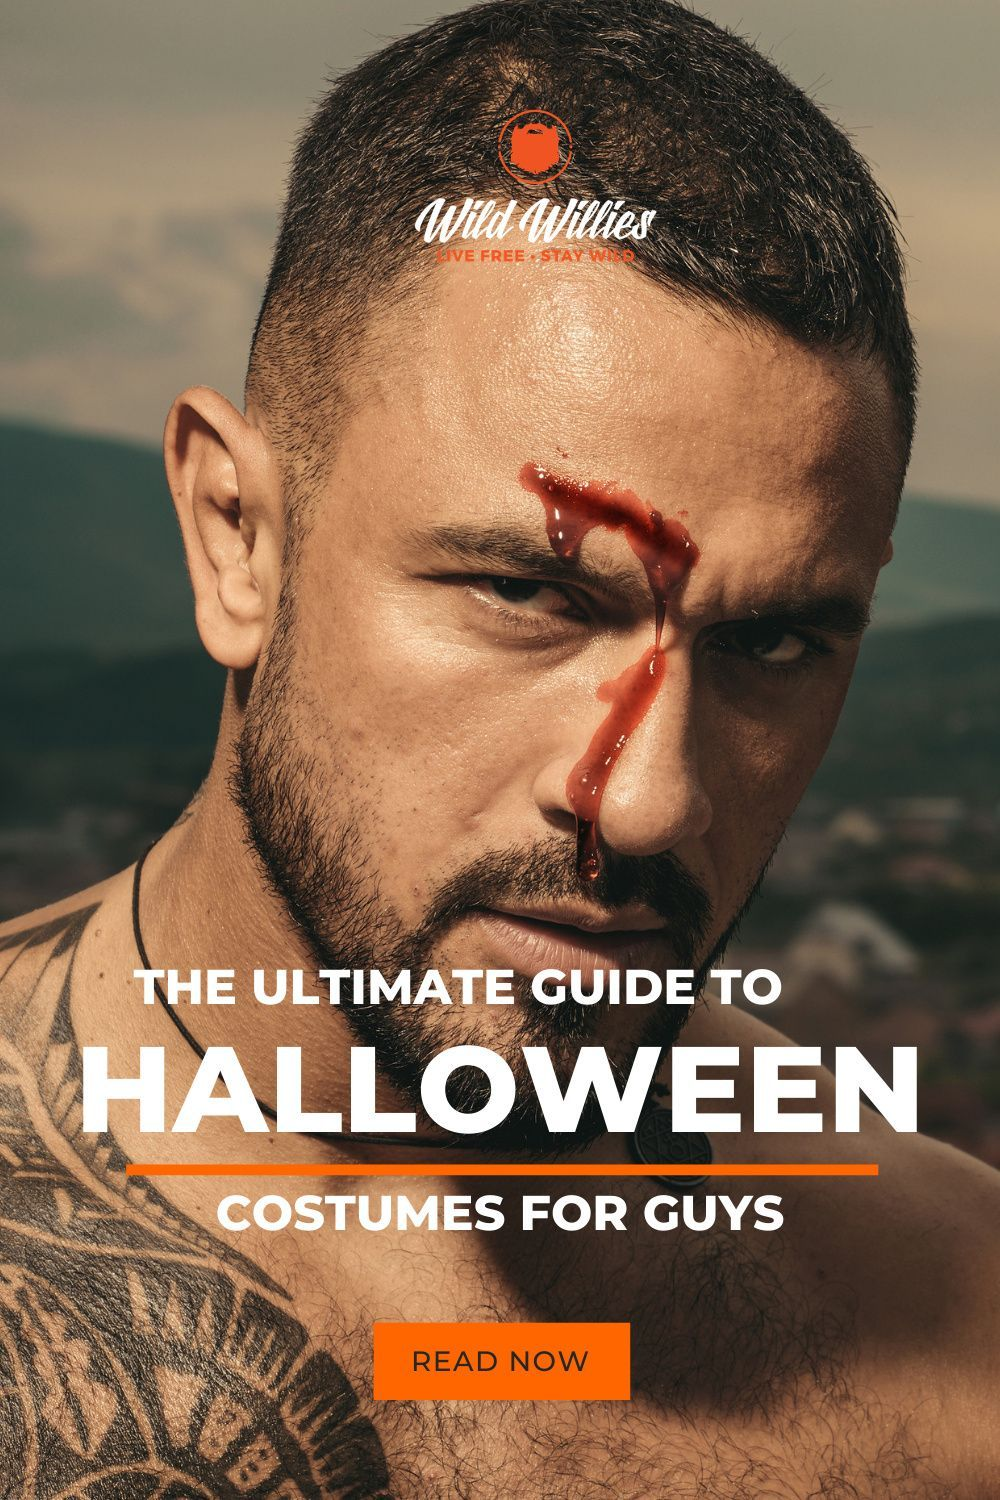 Halloween Costume Ideas For Guys With Beards in 2020 ...